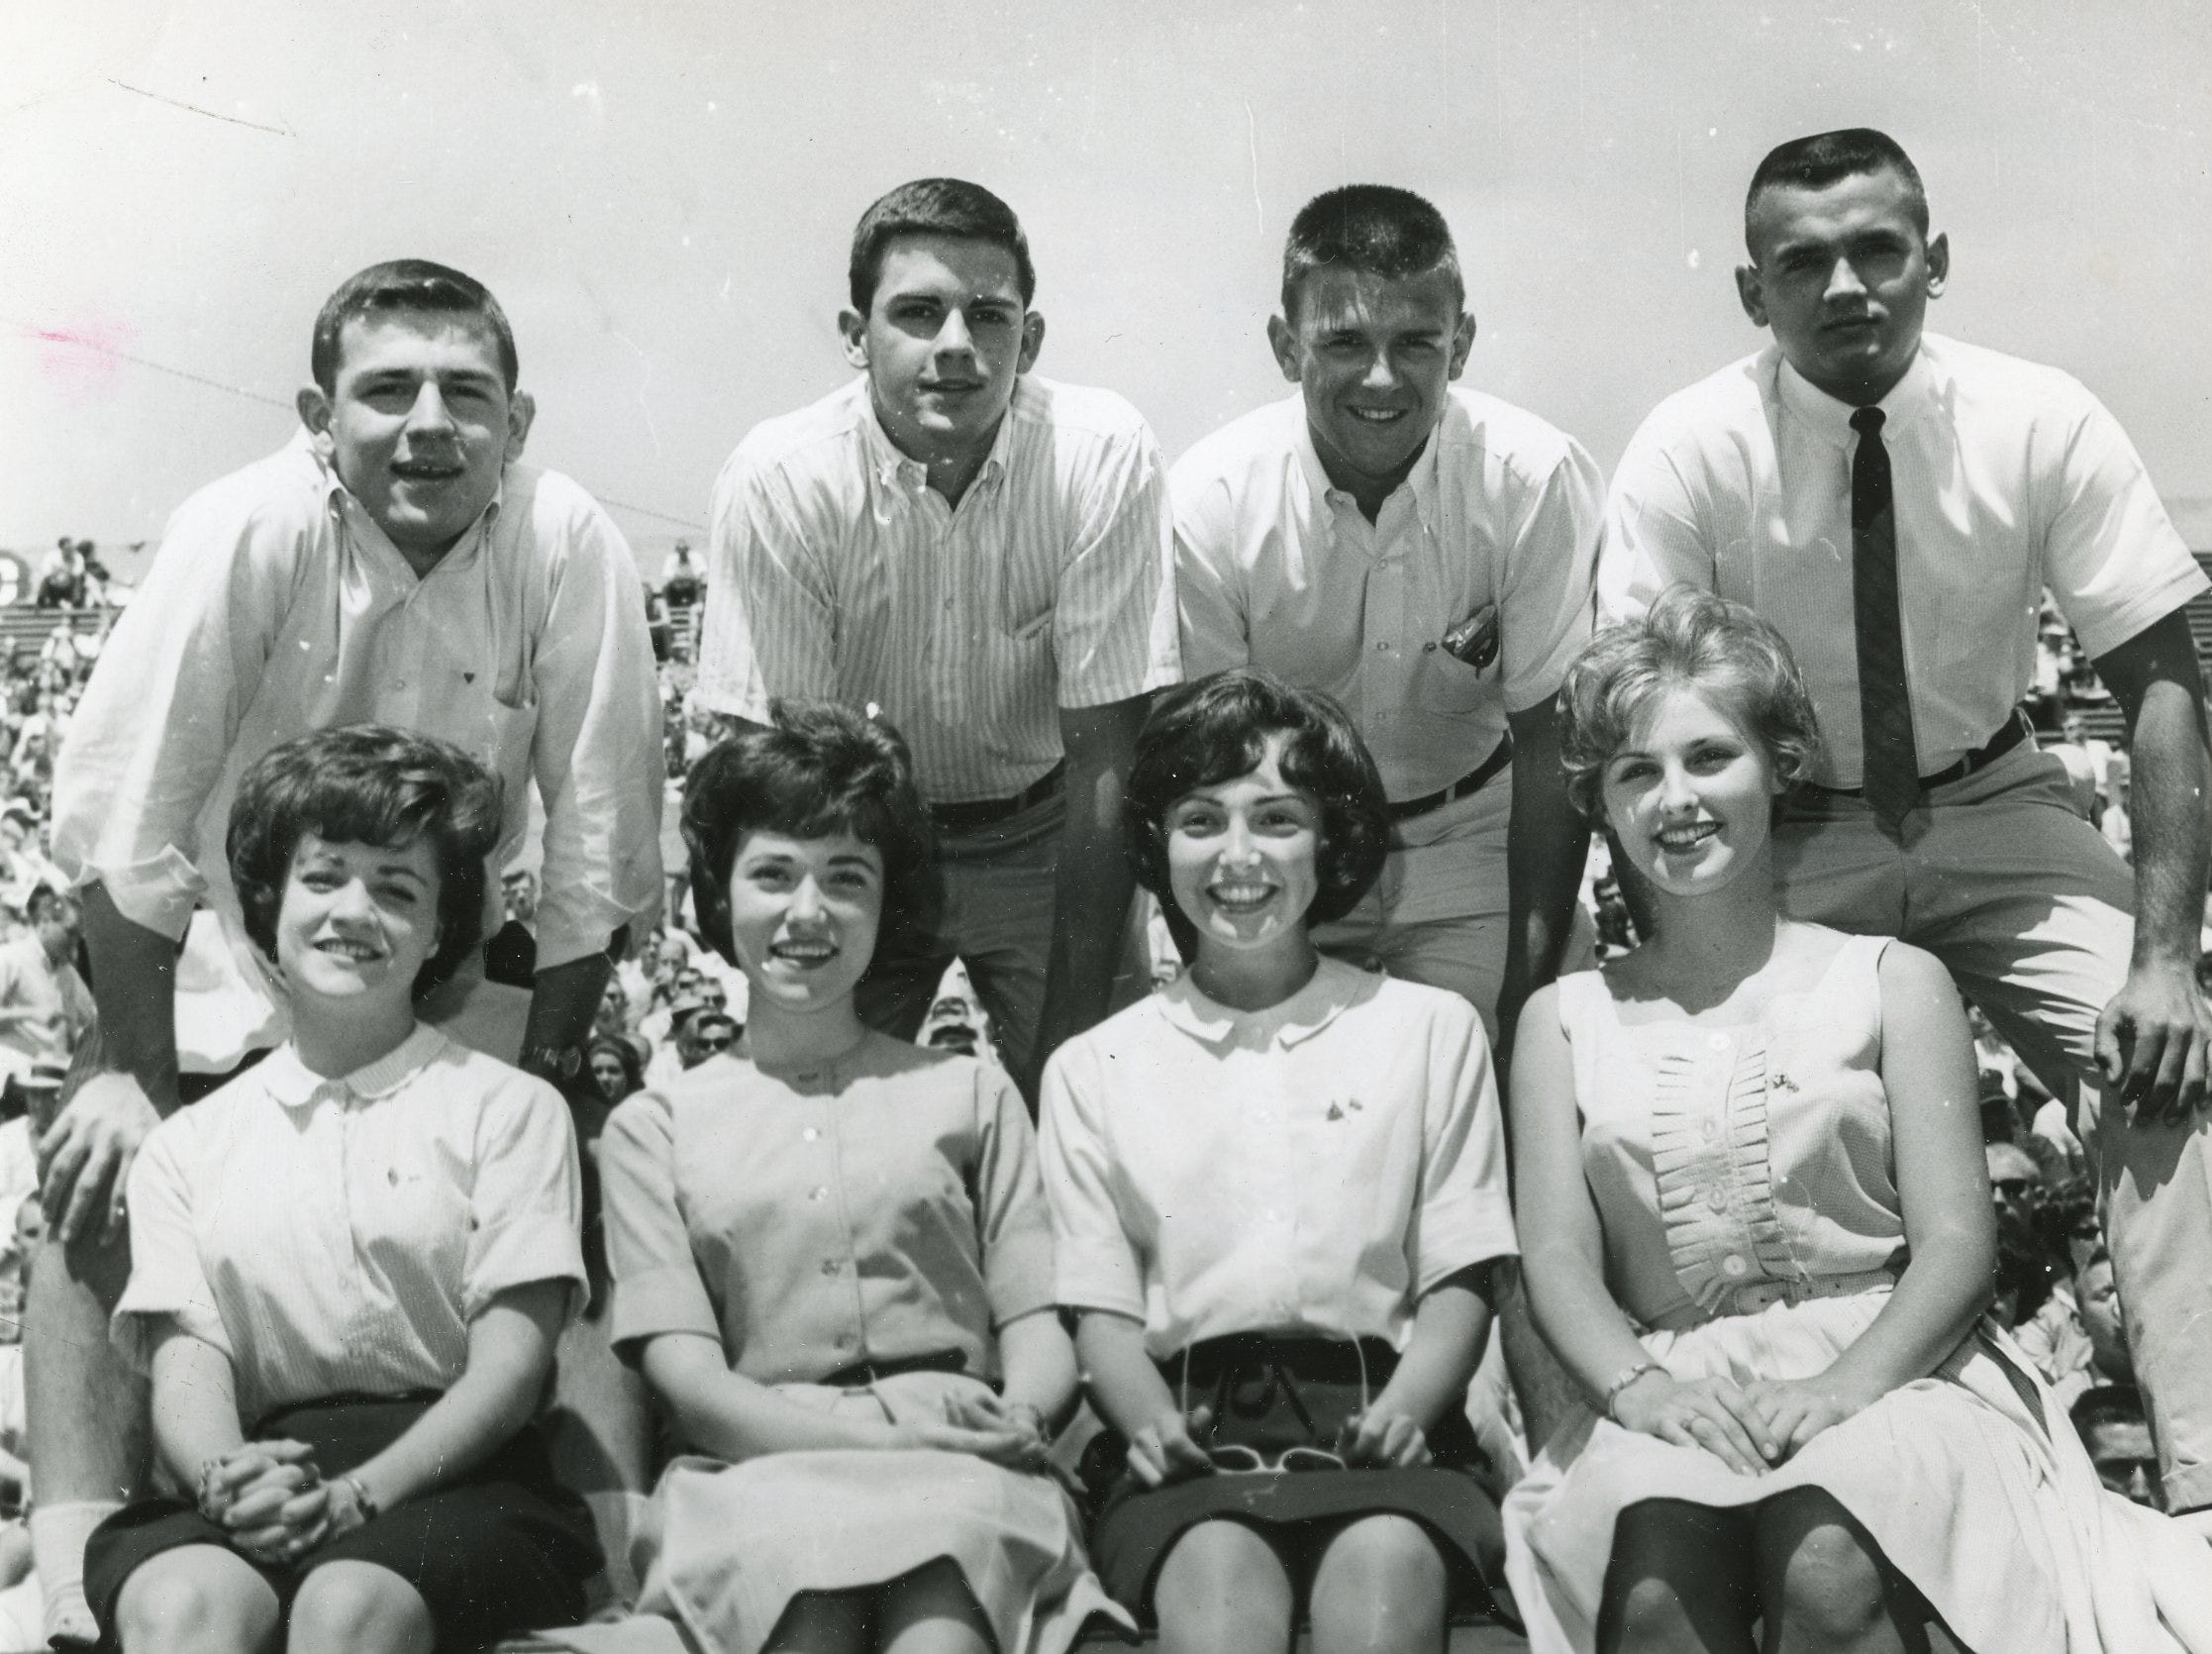 Members of the 1963 UT cheer team included (front) Linda May, Sandra Duncan, Pat Handly, Wallene Threadgill; (back) Pete Thompson, Charles Baker, Jim Bankston and Bob McConkey. Not pictured were Bob Martin and Janet Stanford.